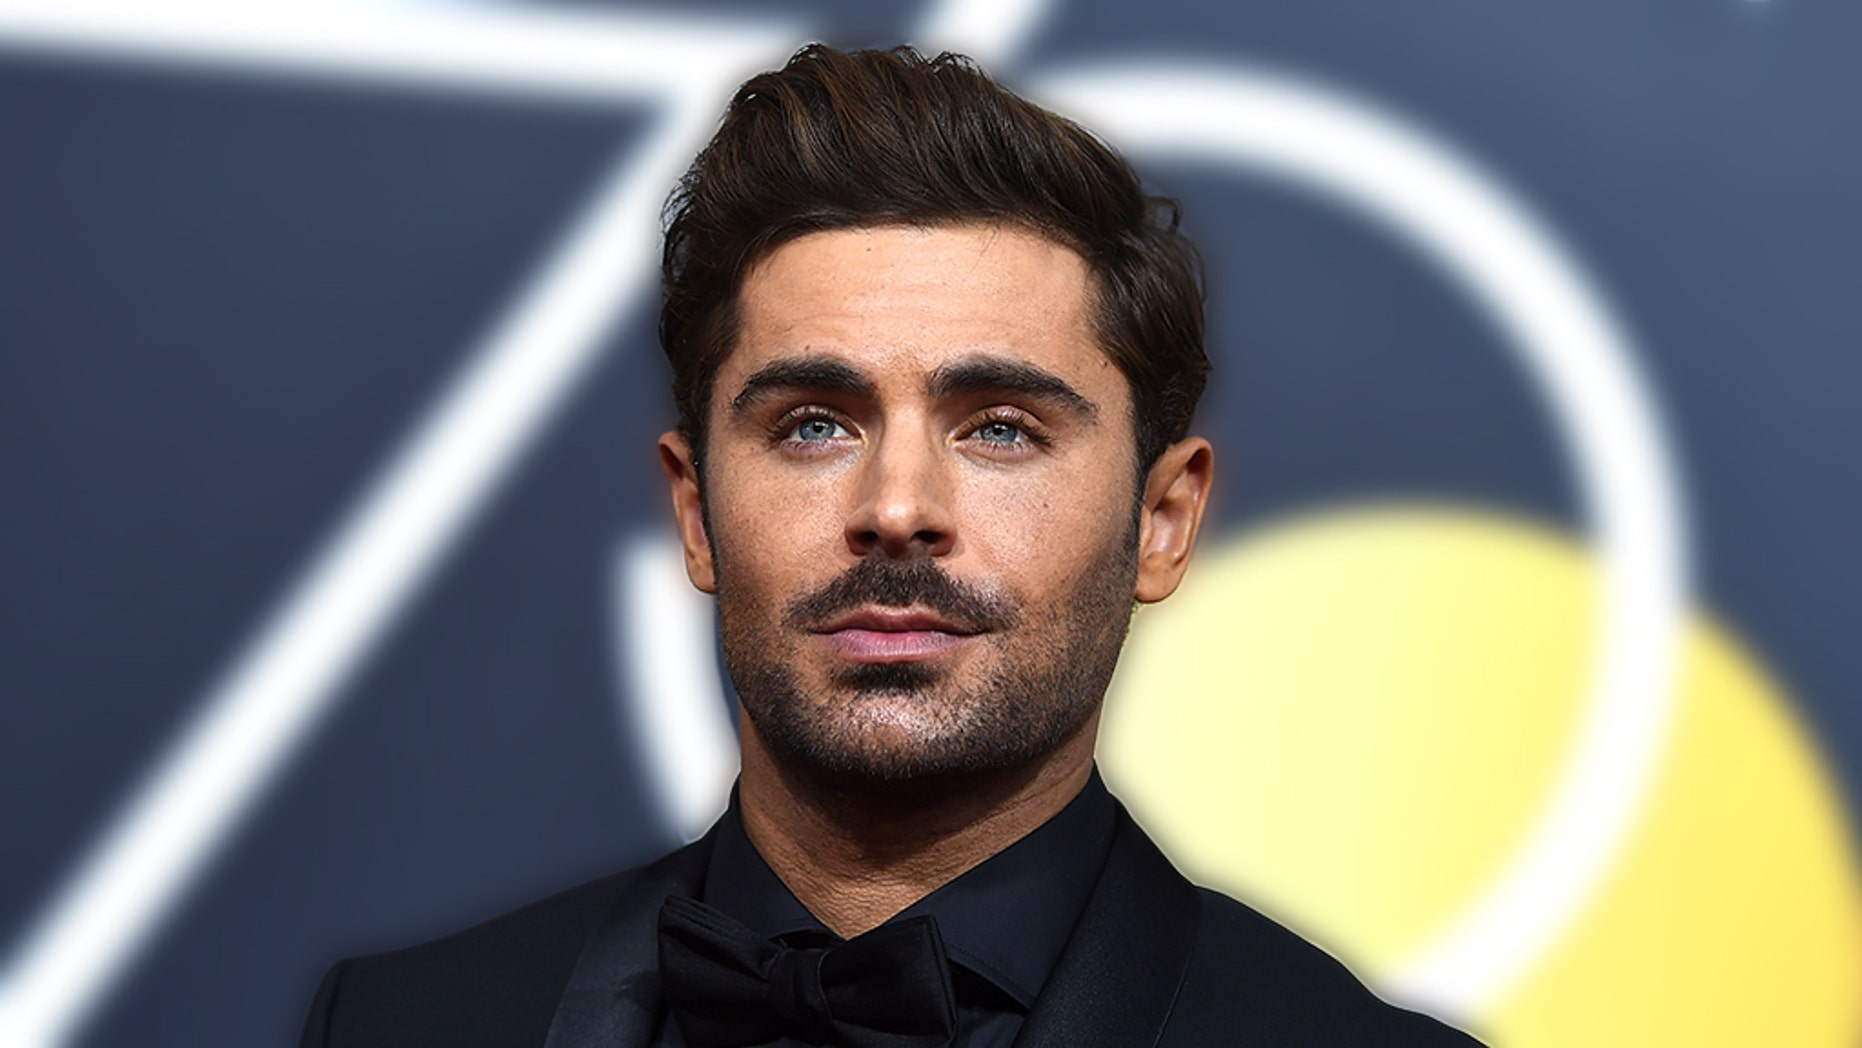 Zac Efron arrives at the 75th annual Golden Globe Awards at the Beverly Hilton Hotel on Sunday, Jan. 7, 2018, in Beverly Hills, Calif. (Photo by Jordan Strauss/Invision/AP)